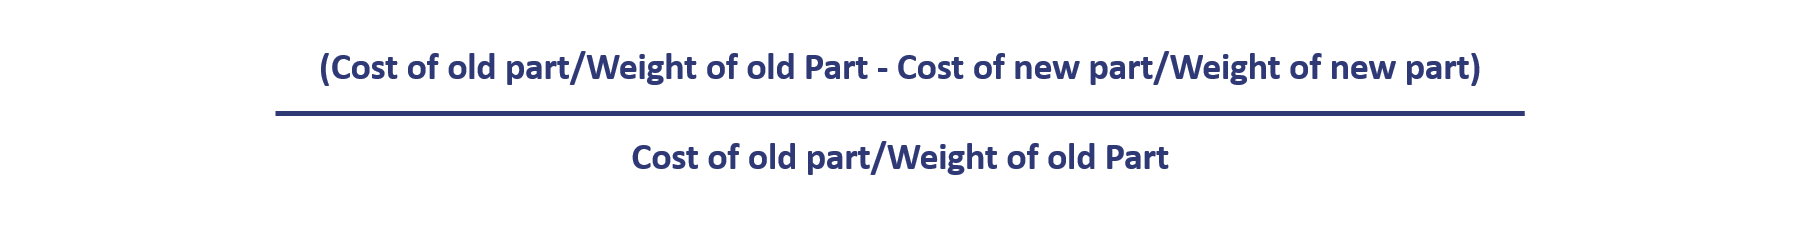 calculates cost of old part vs cost of new part